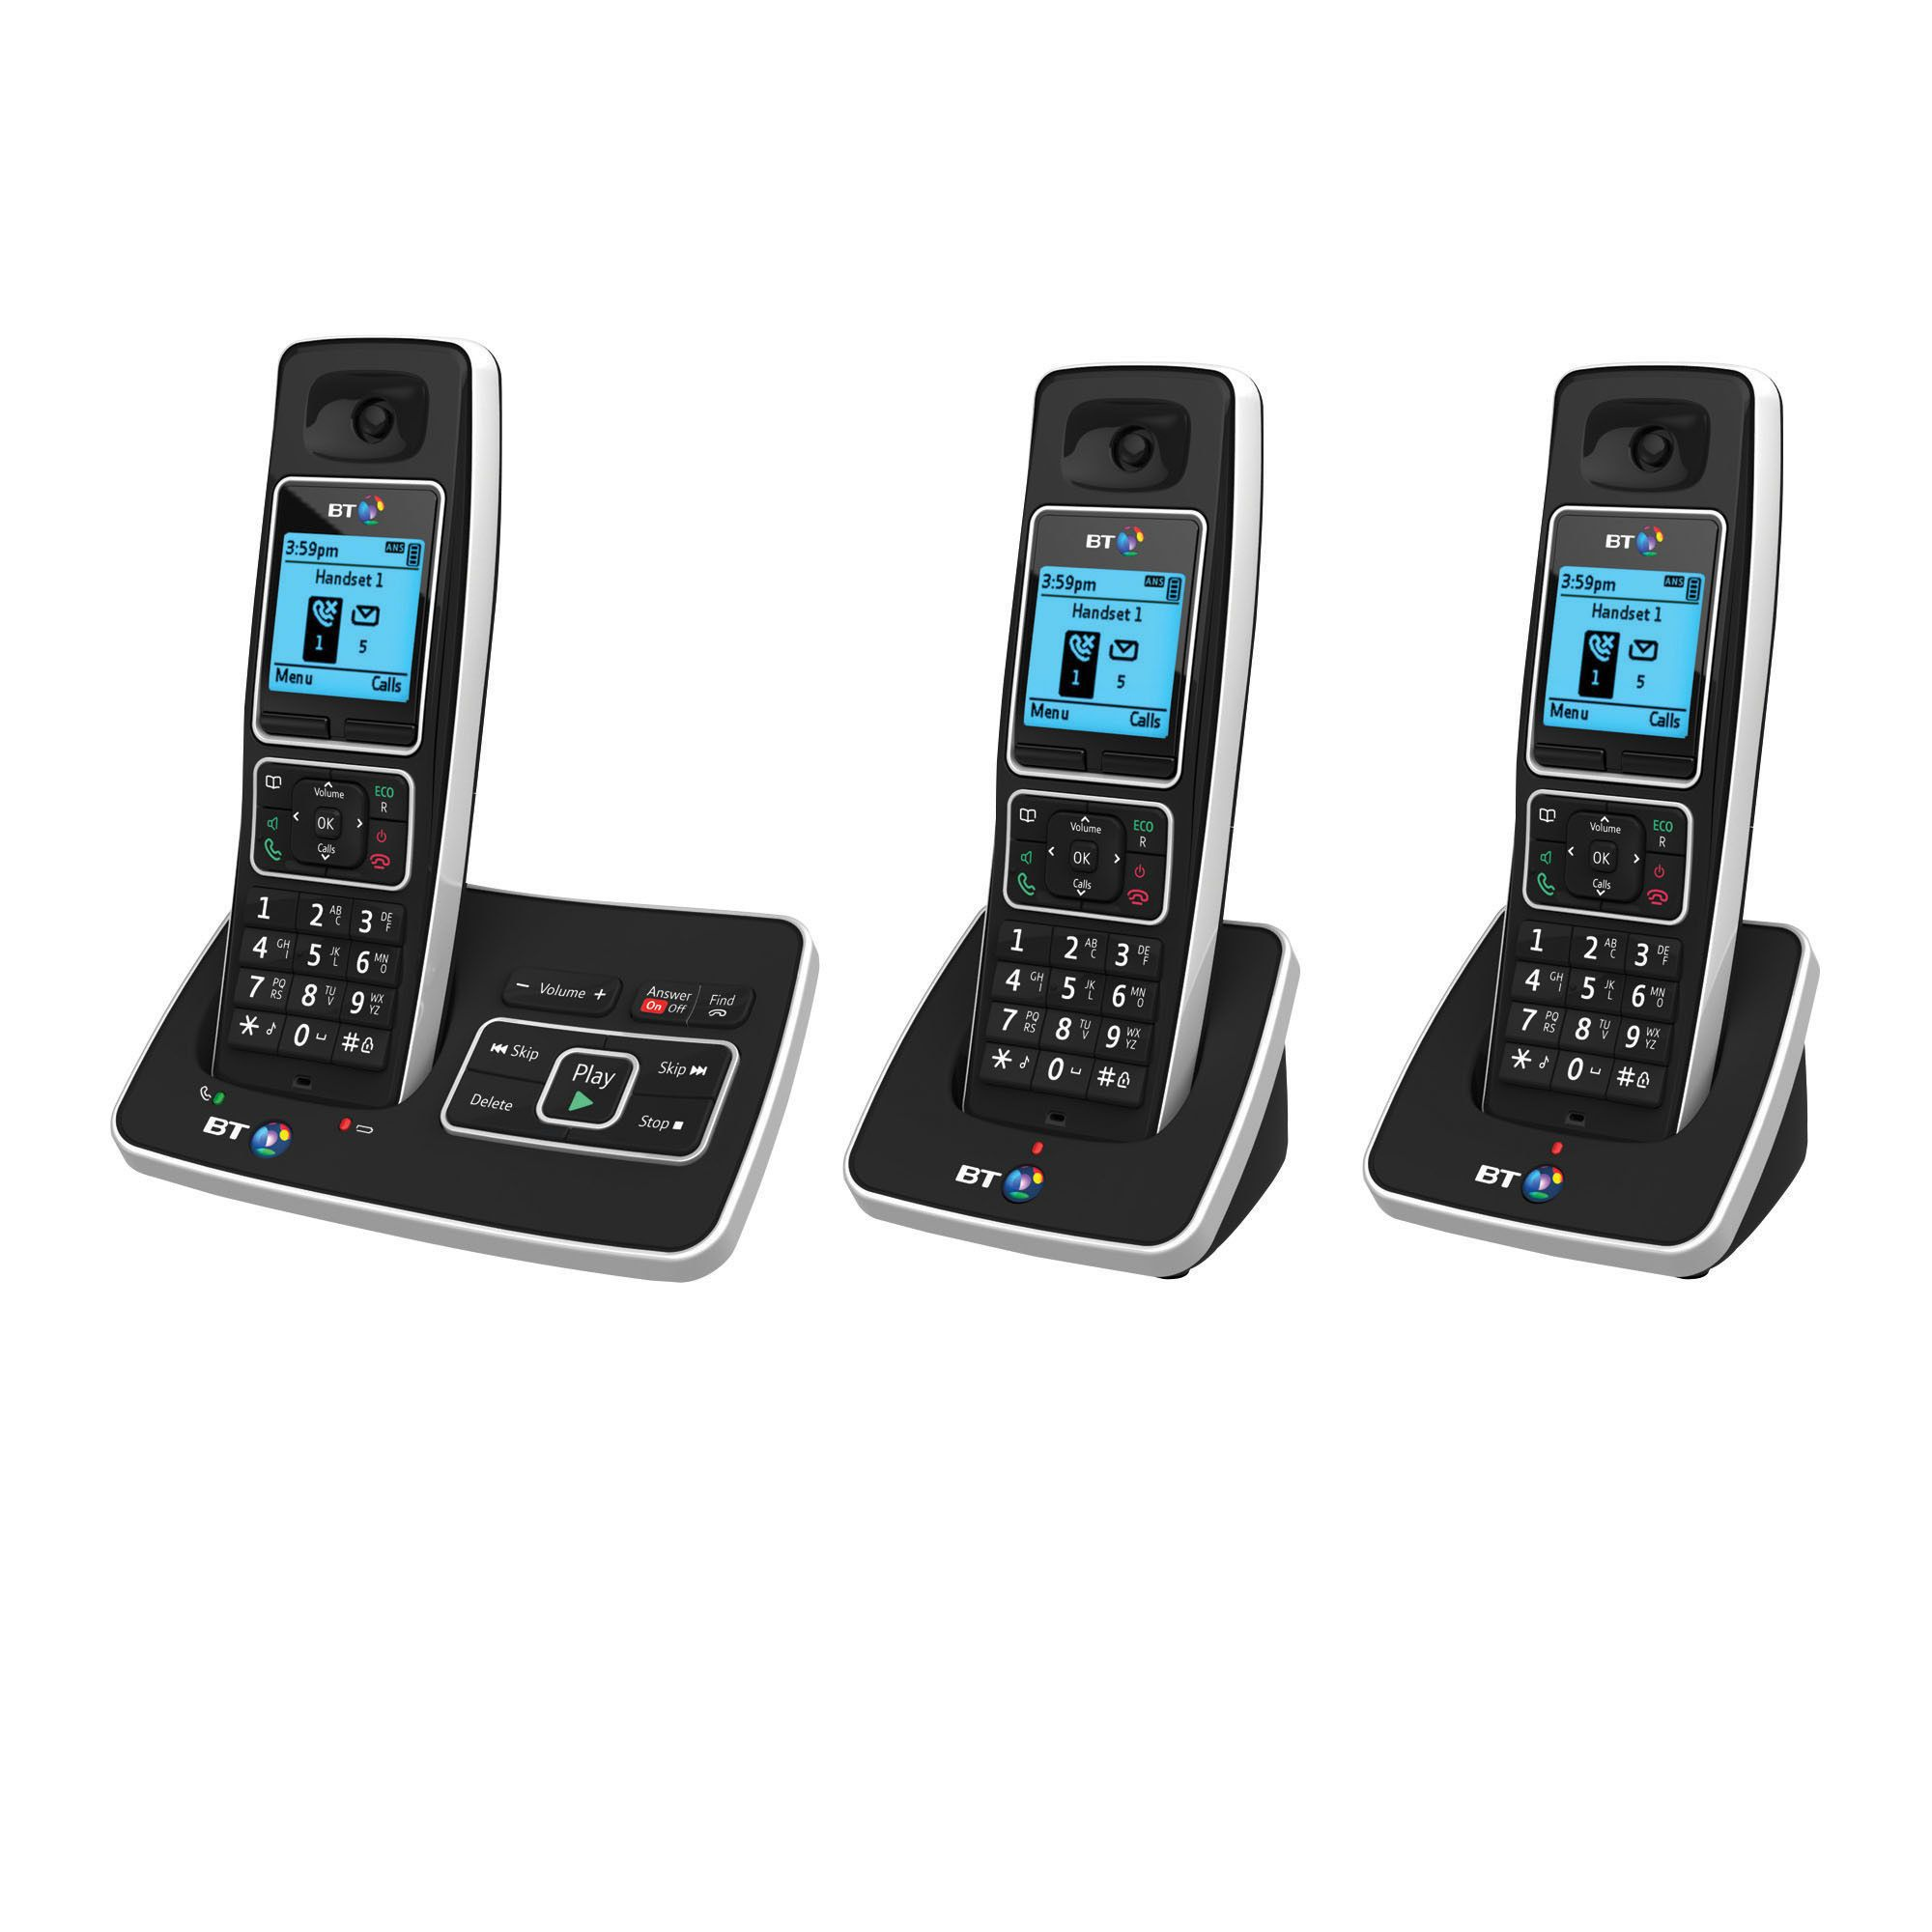 Bt 6500 Black Cordless Digital Telephone With Answering Machine - Trio Handset